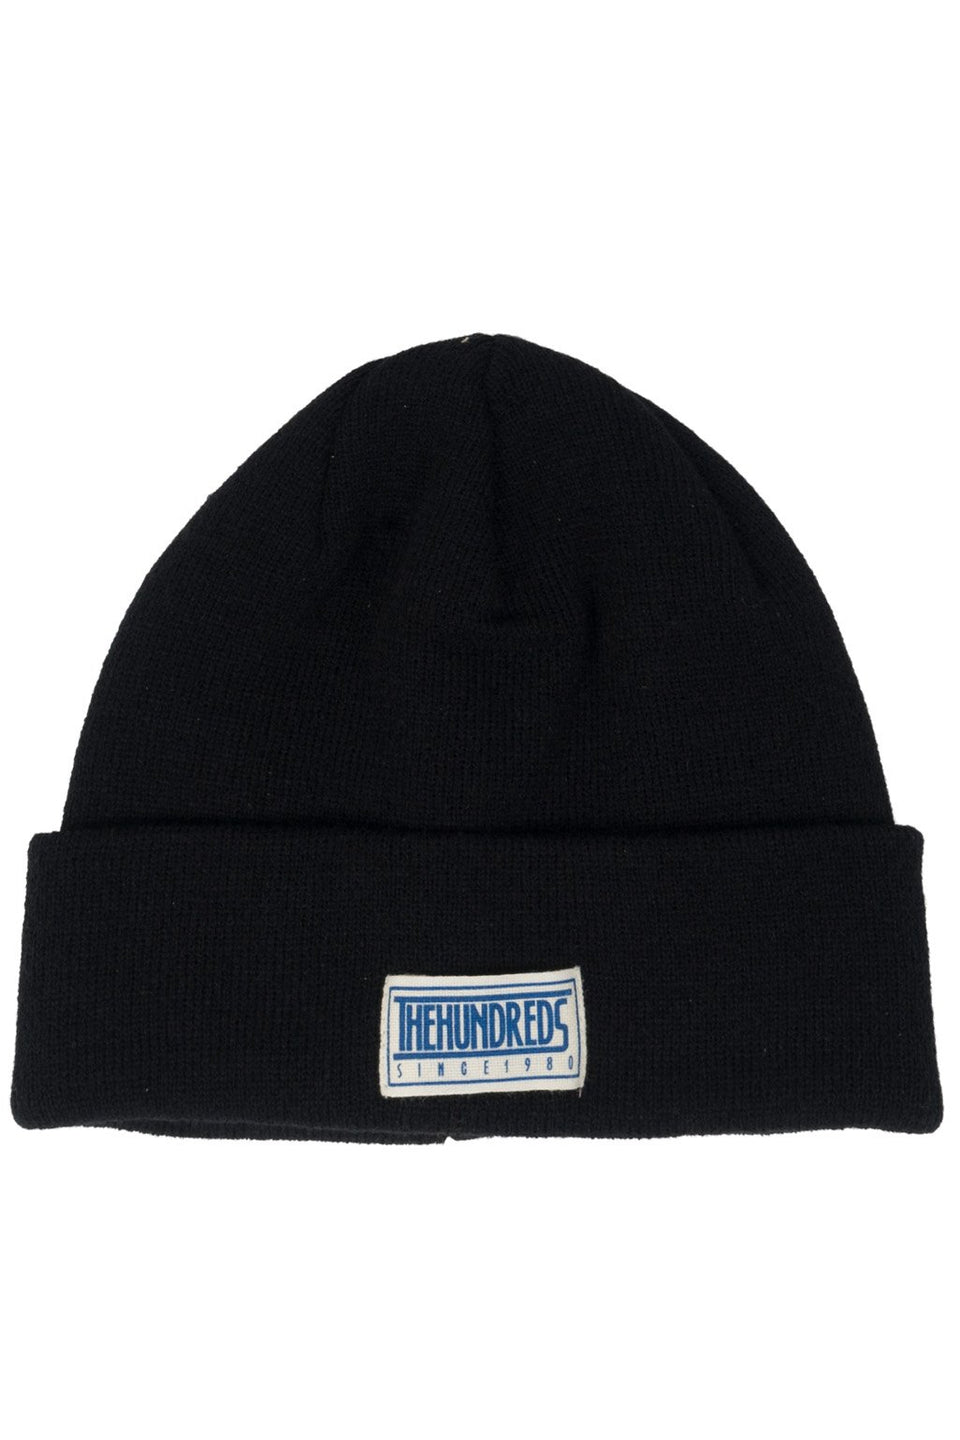 District Beanie